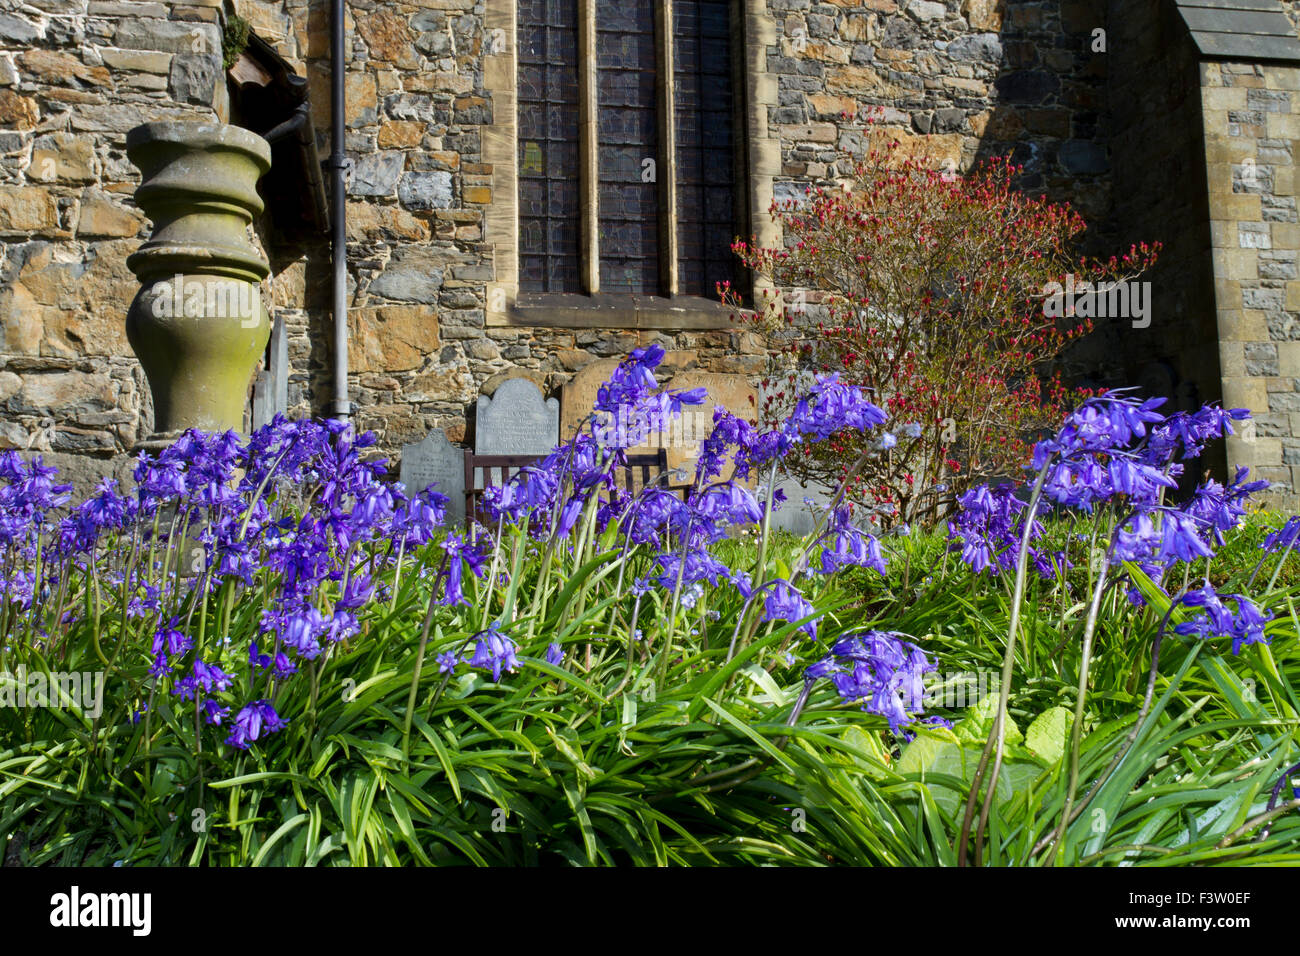 Hybrid bluebells, common X 'Spanish' bluebell (Hyacinthoides x massartiana) flowering in a churchyard. Llanidloes, - Stock Image